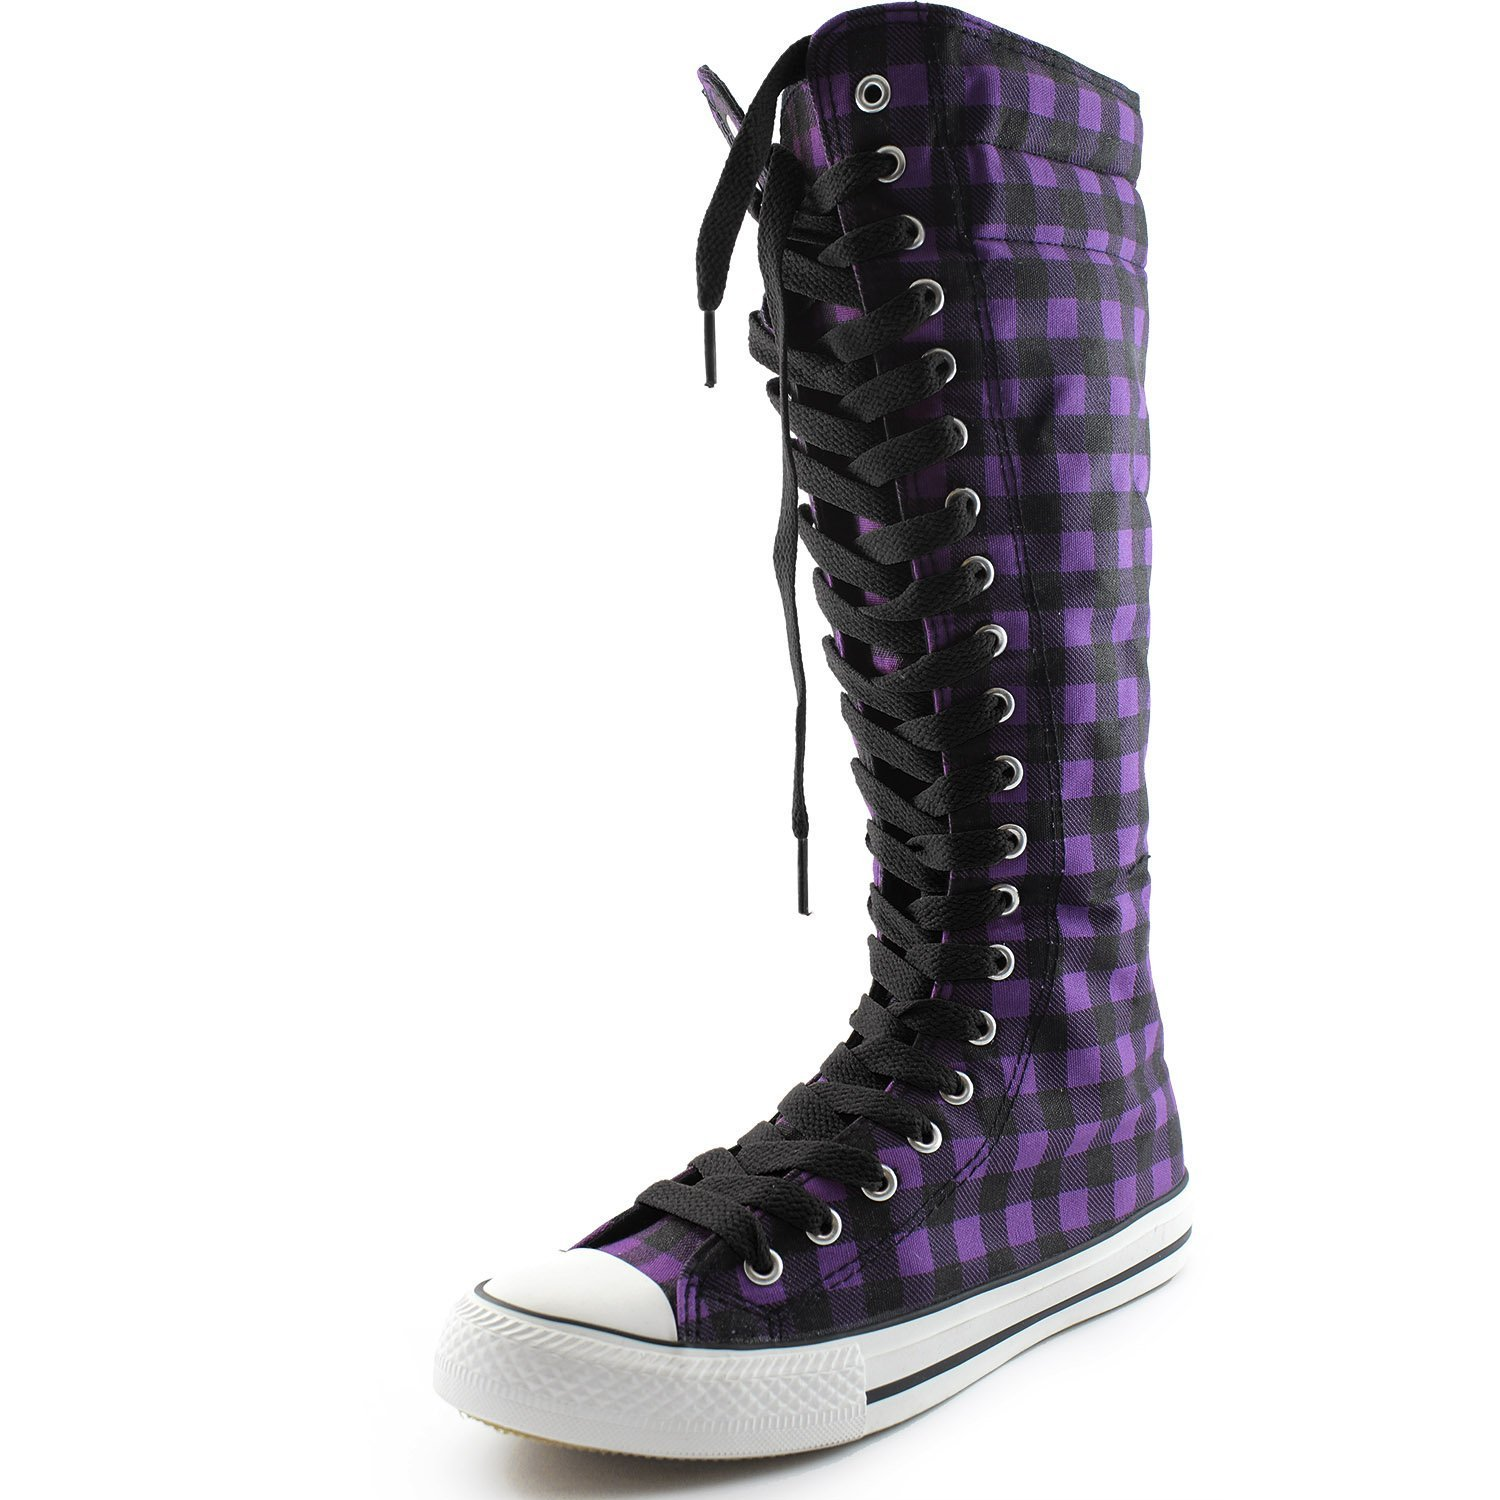 New Fasion Women Canvas Sneakers Punk flat Skatter Knee High Lace up Shoes (7;5, Graffiti) B00RL9SZ7S 7 B(M) US|Purple/Black Plaid